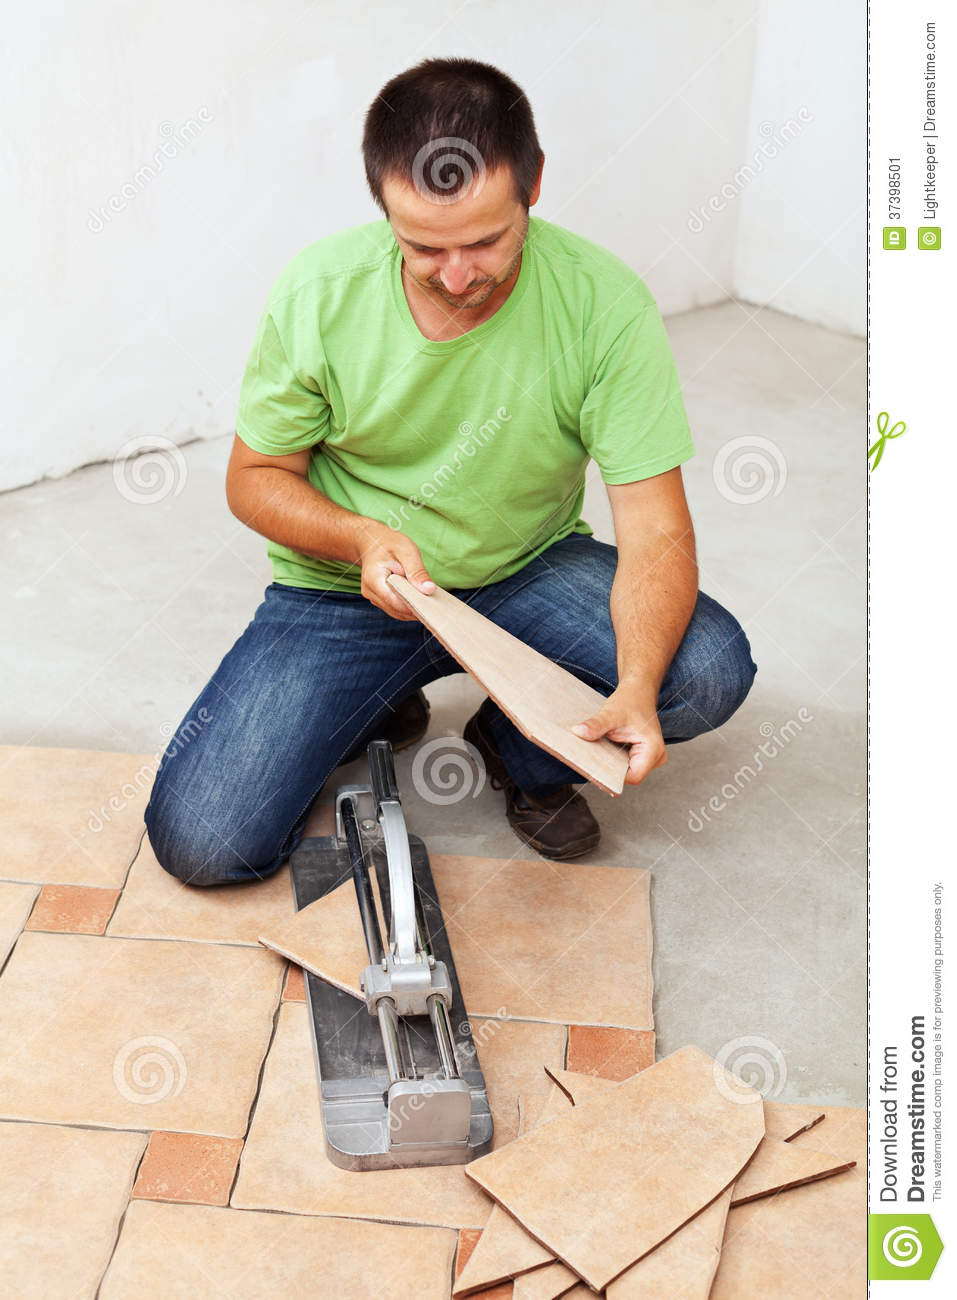 Floor Tile Workers : Worker hands laying ceramic floor tiles royalty free stock